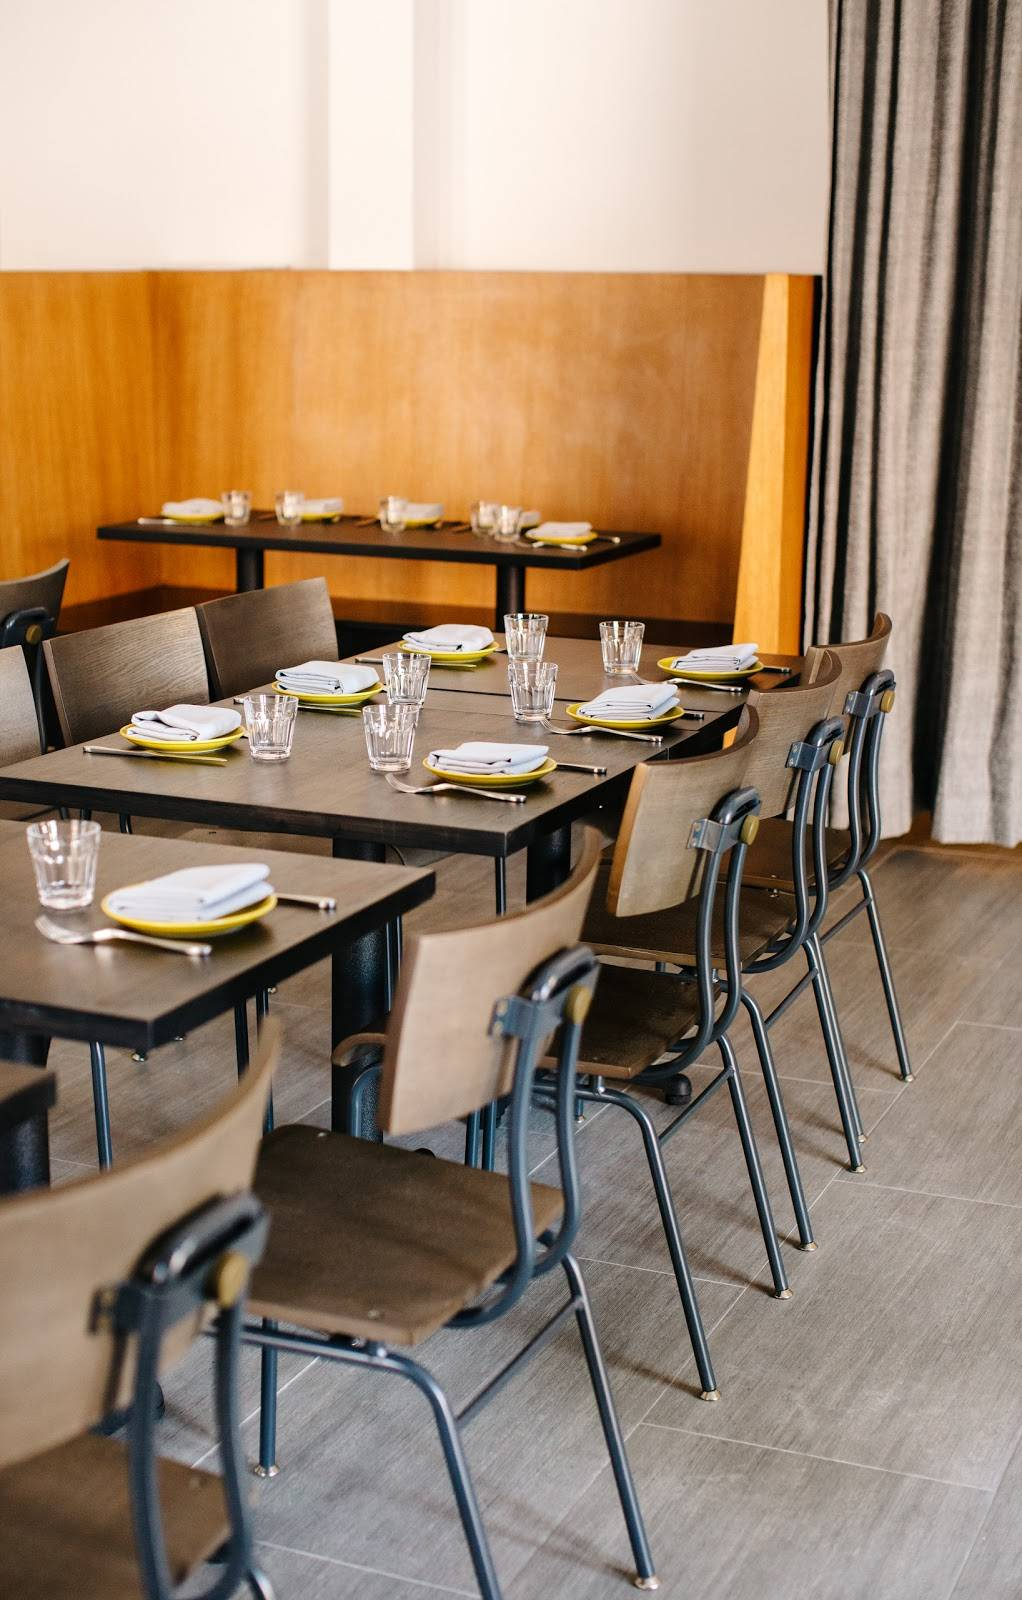 Heres Looking At You   restaurant   4202, 3901 W 6th St, Los Angeles, CA 90020, USA   2135683573 OR +1 213-568-3573